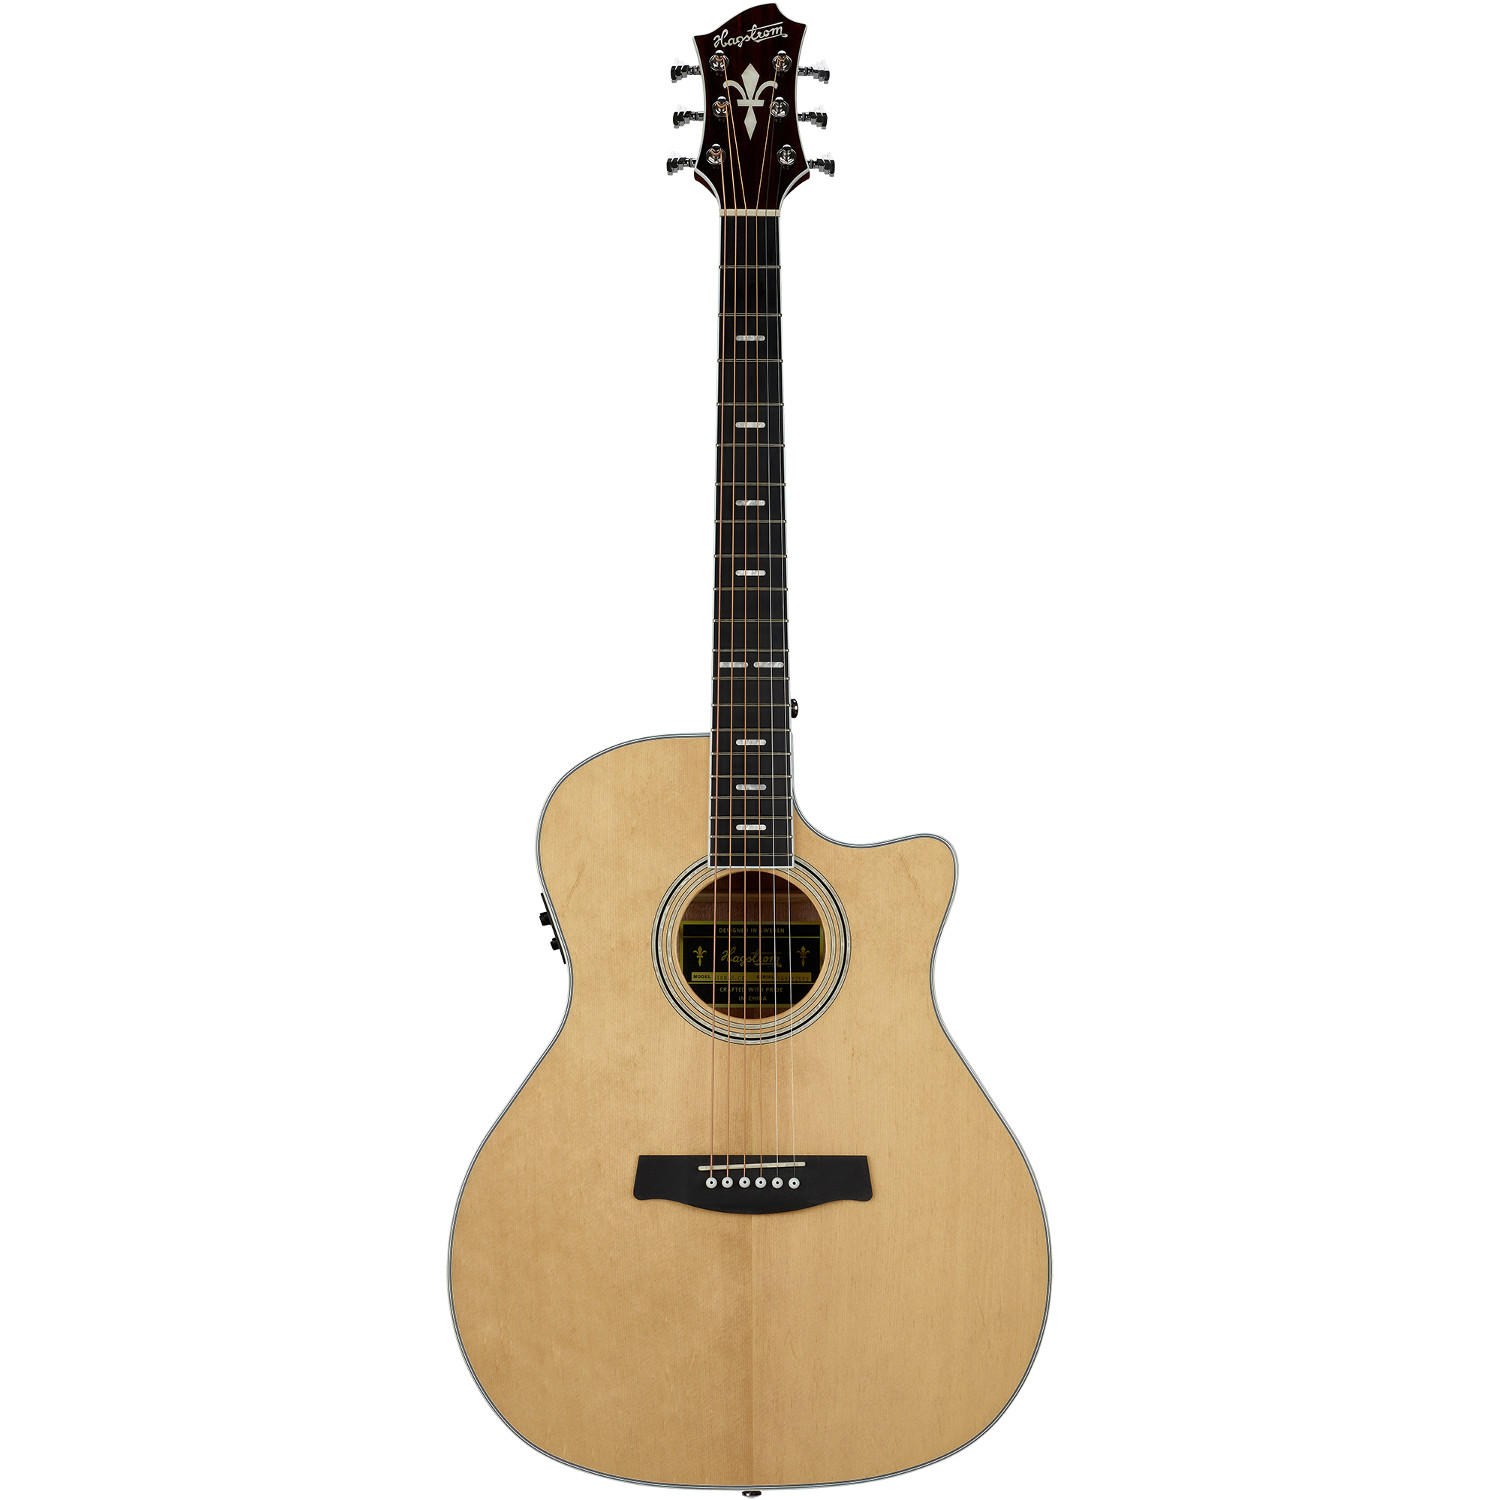 Hagstrom Siljan II Grand Auditorium CE Natural acoustic steel string guitar